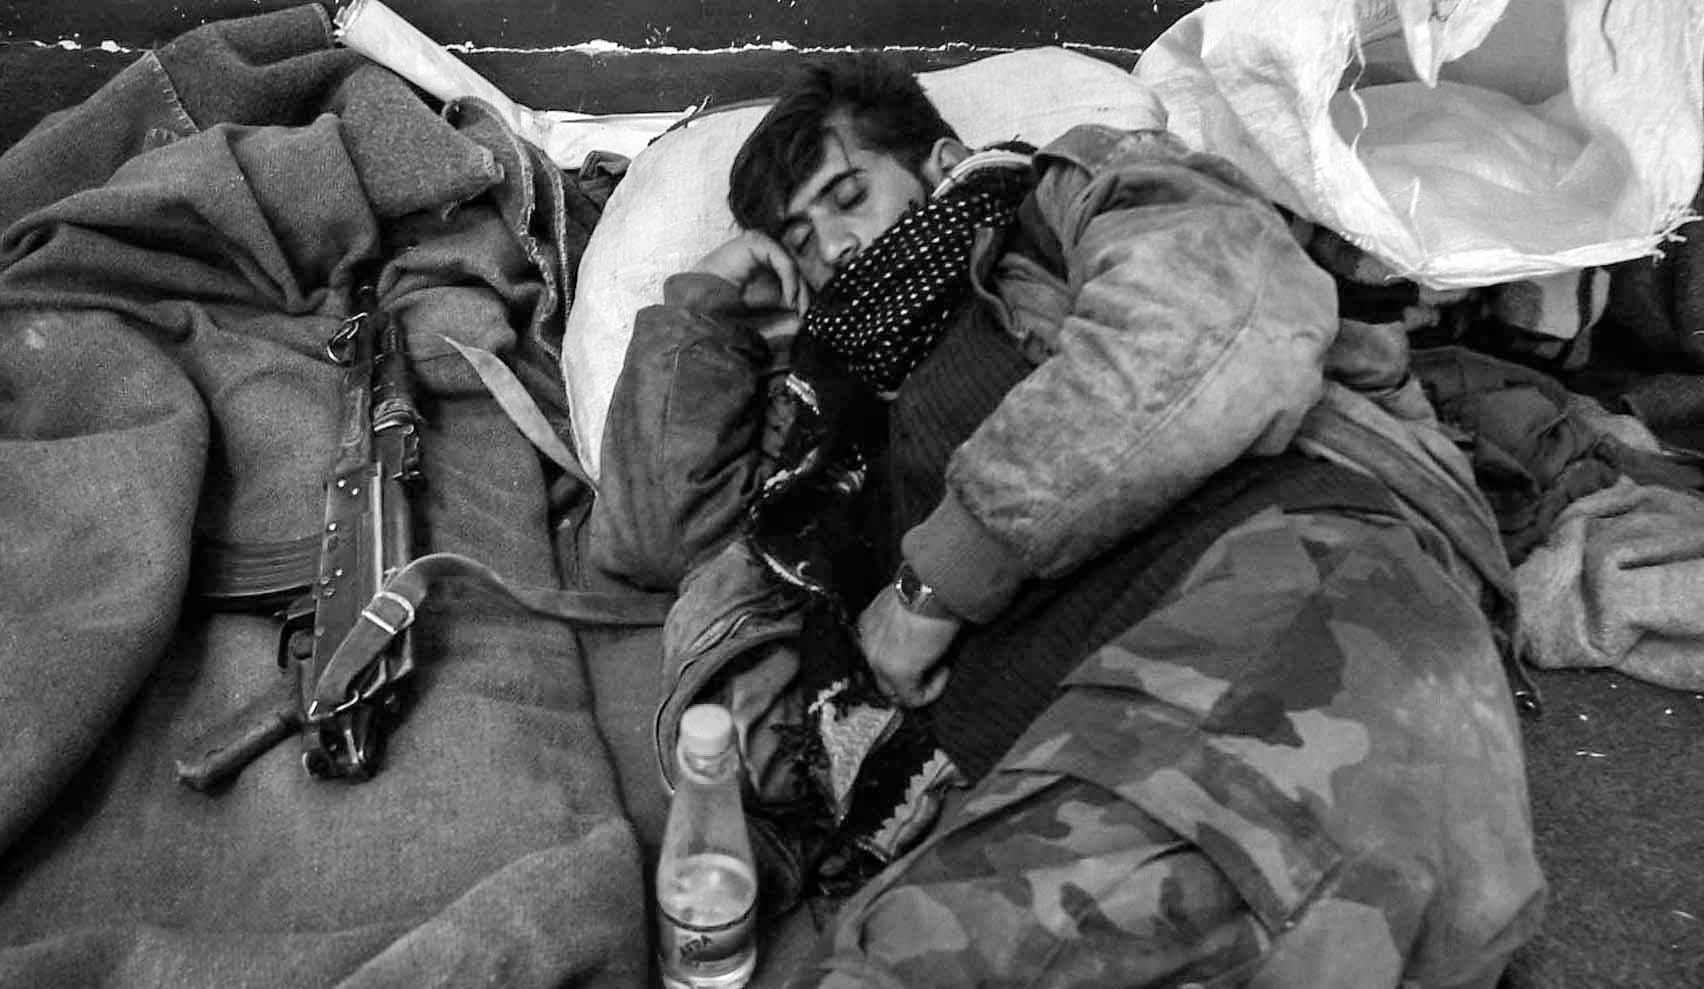 Kurdish solder takes a nap inside a mosk in the village of Gulp, which was taken over recently from Ansar al-Islam, Islamic fundamentalist group.